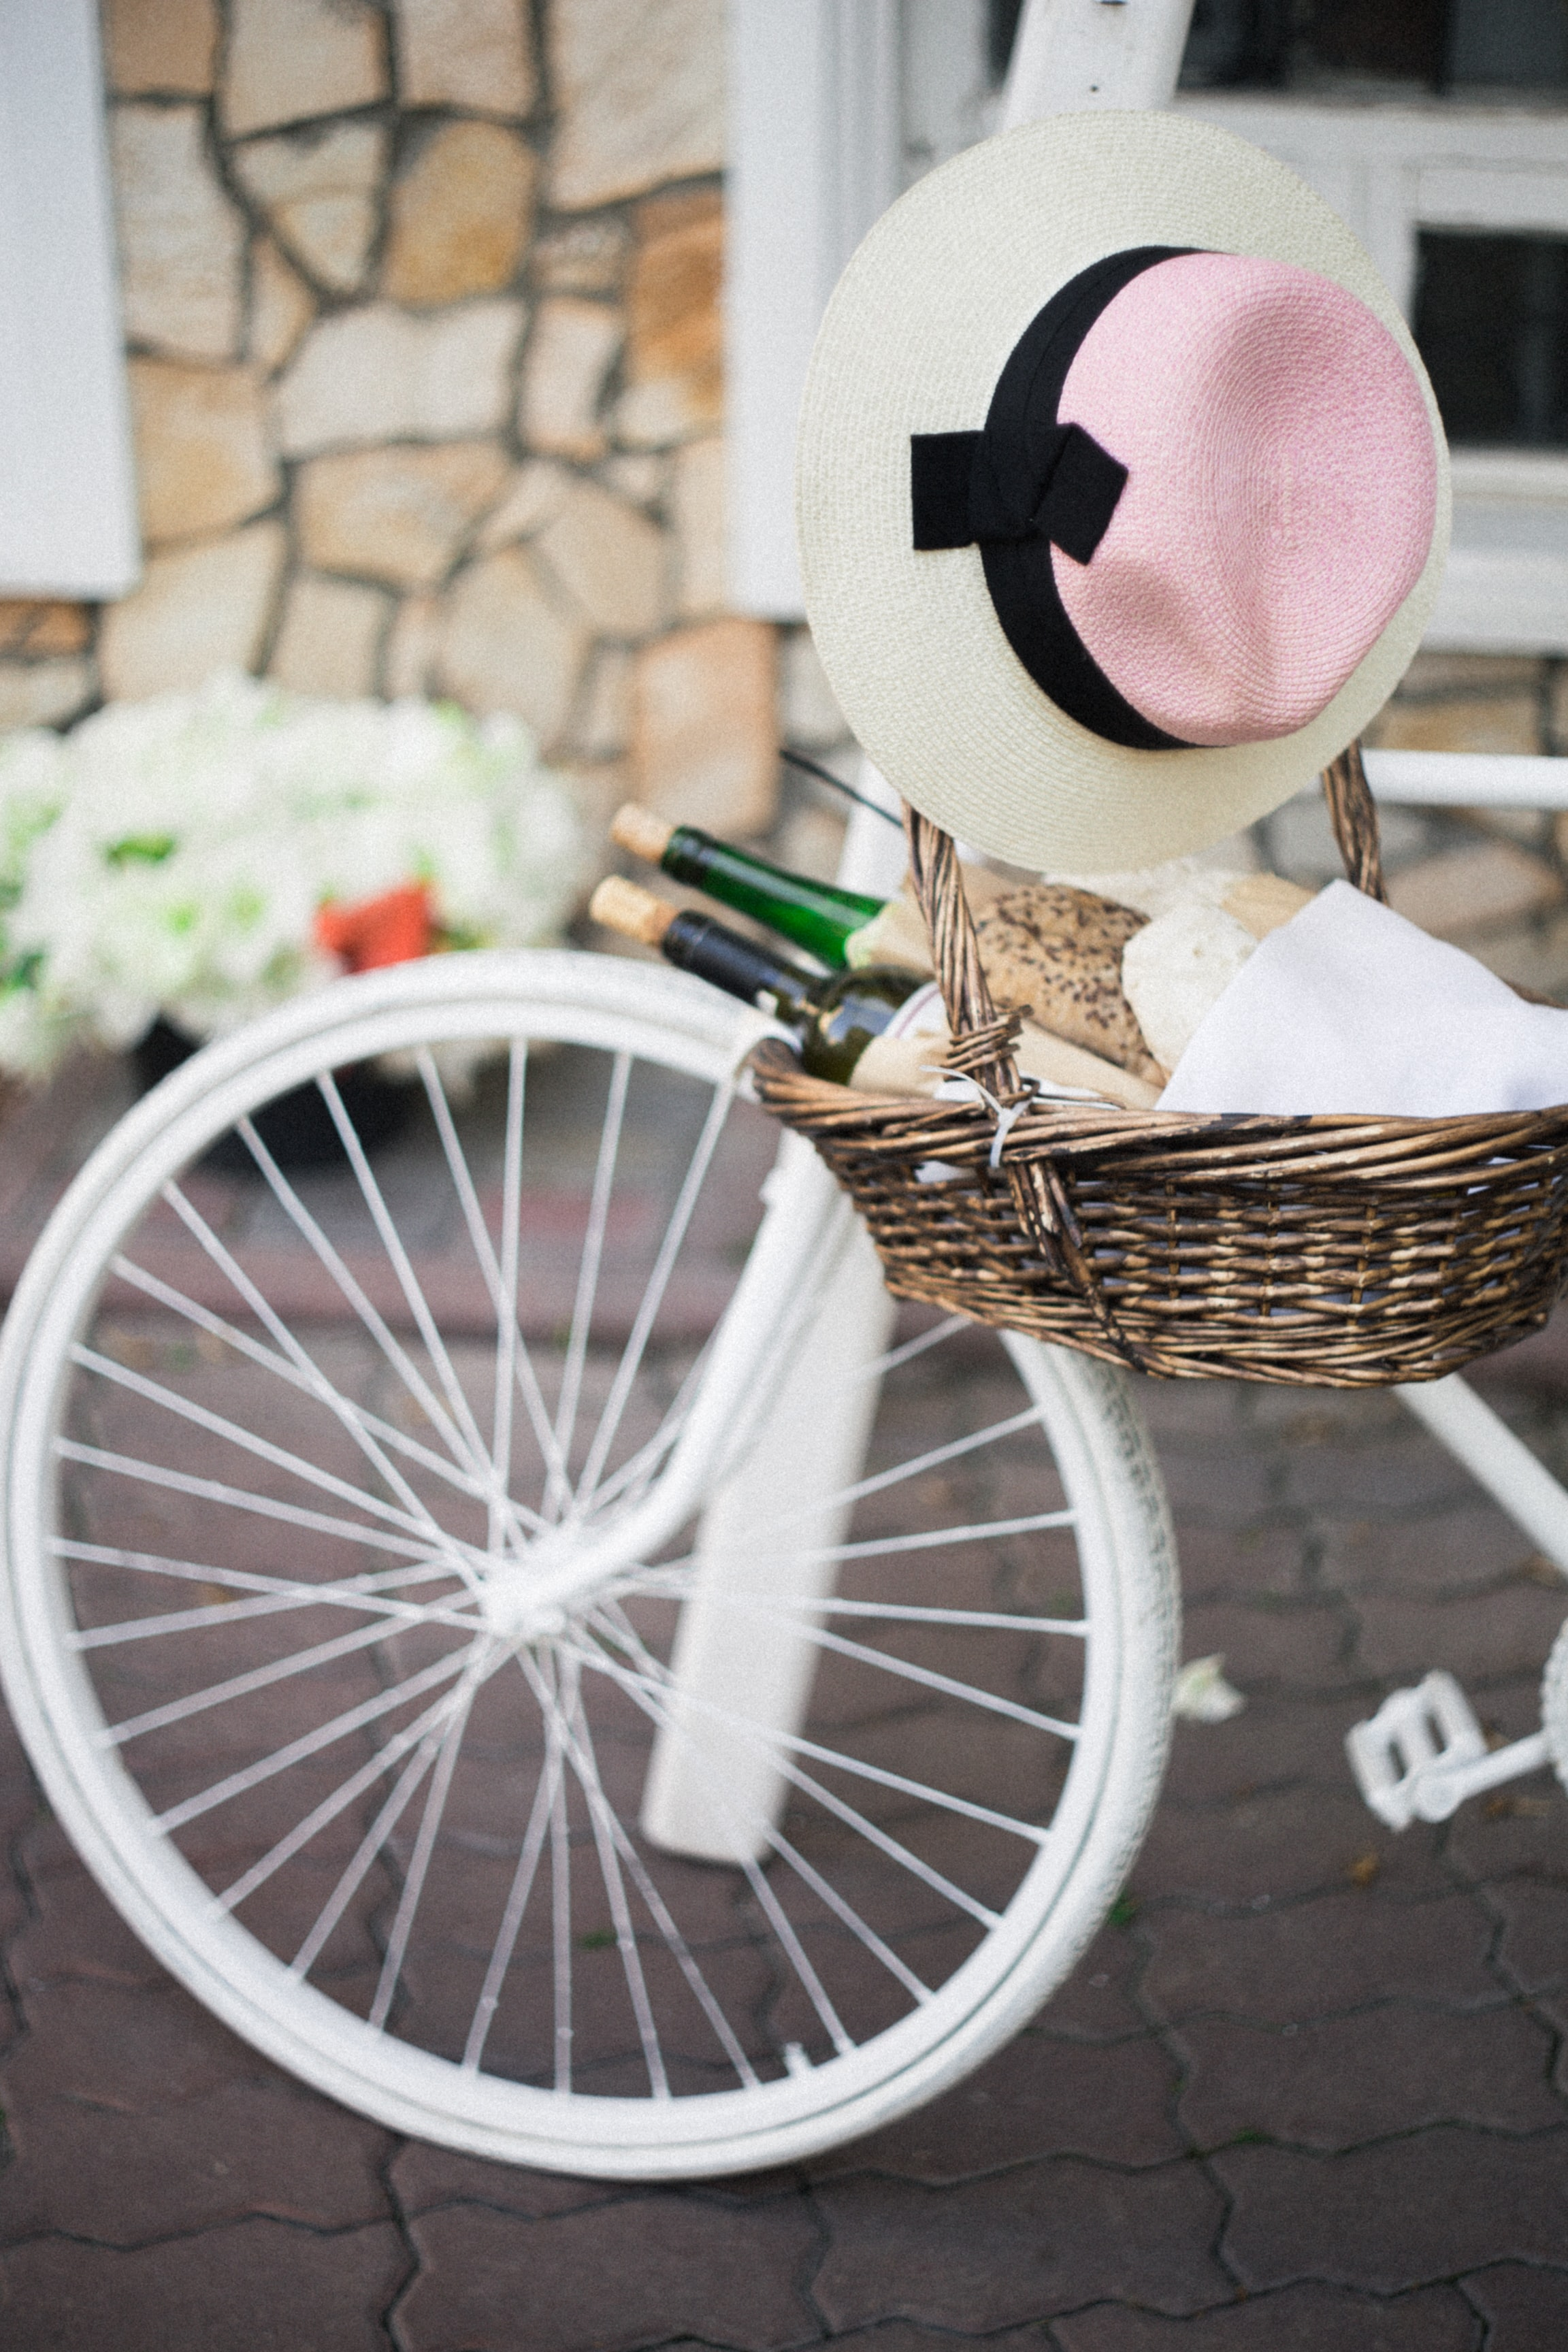 A basket with two bottles of wine and fresh bread hanging from the handlebar of a white bicycle